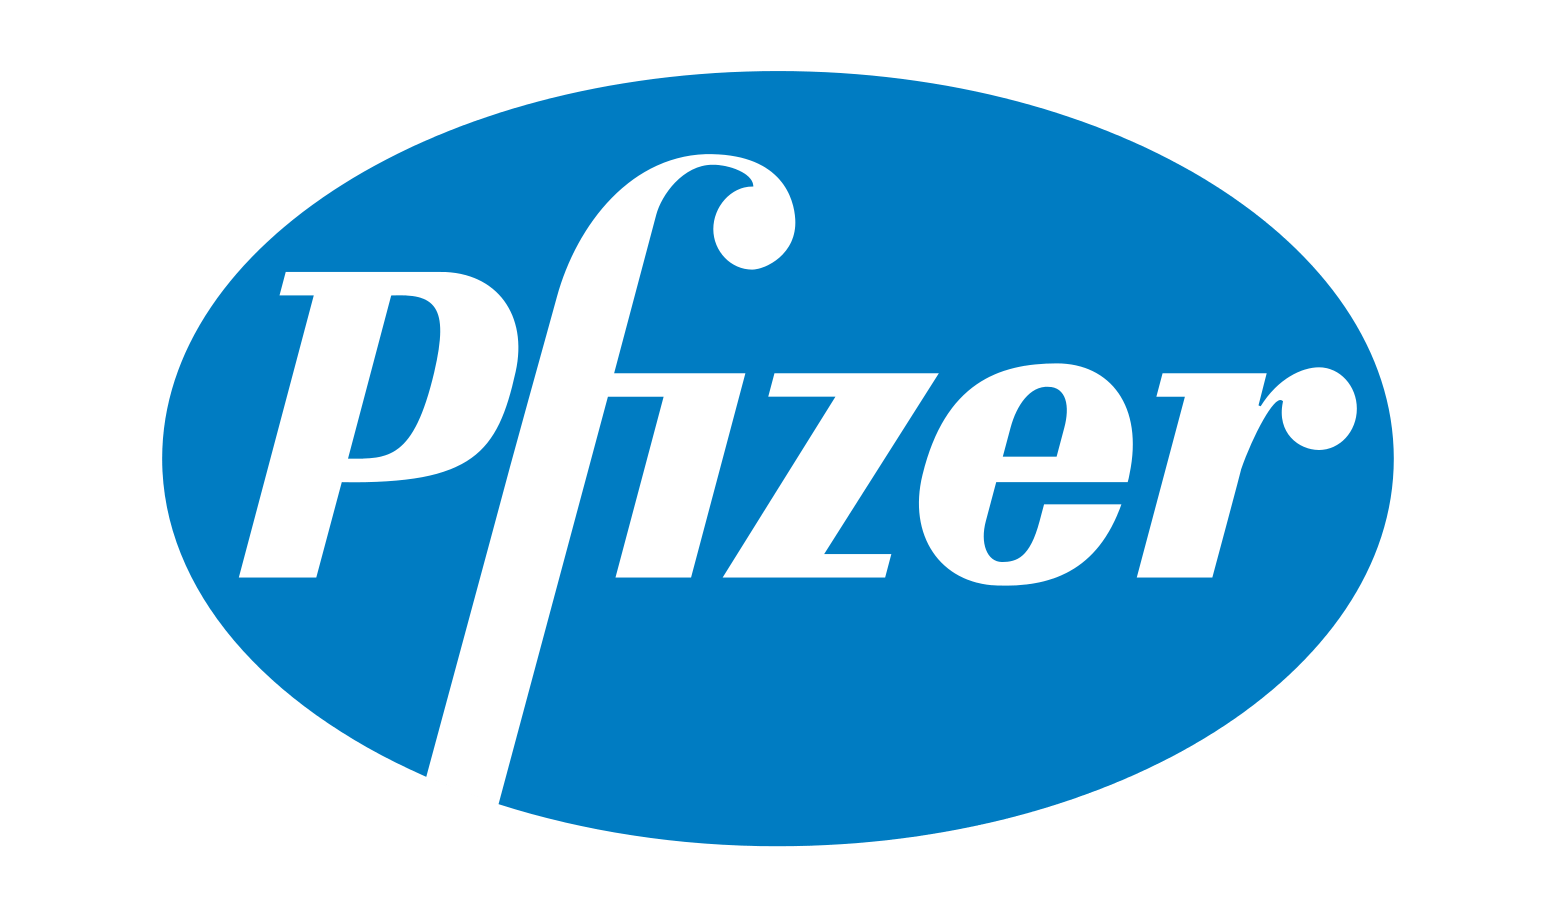 Pfizer - Approval and Change Workflows